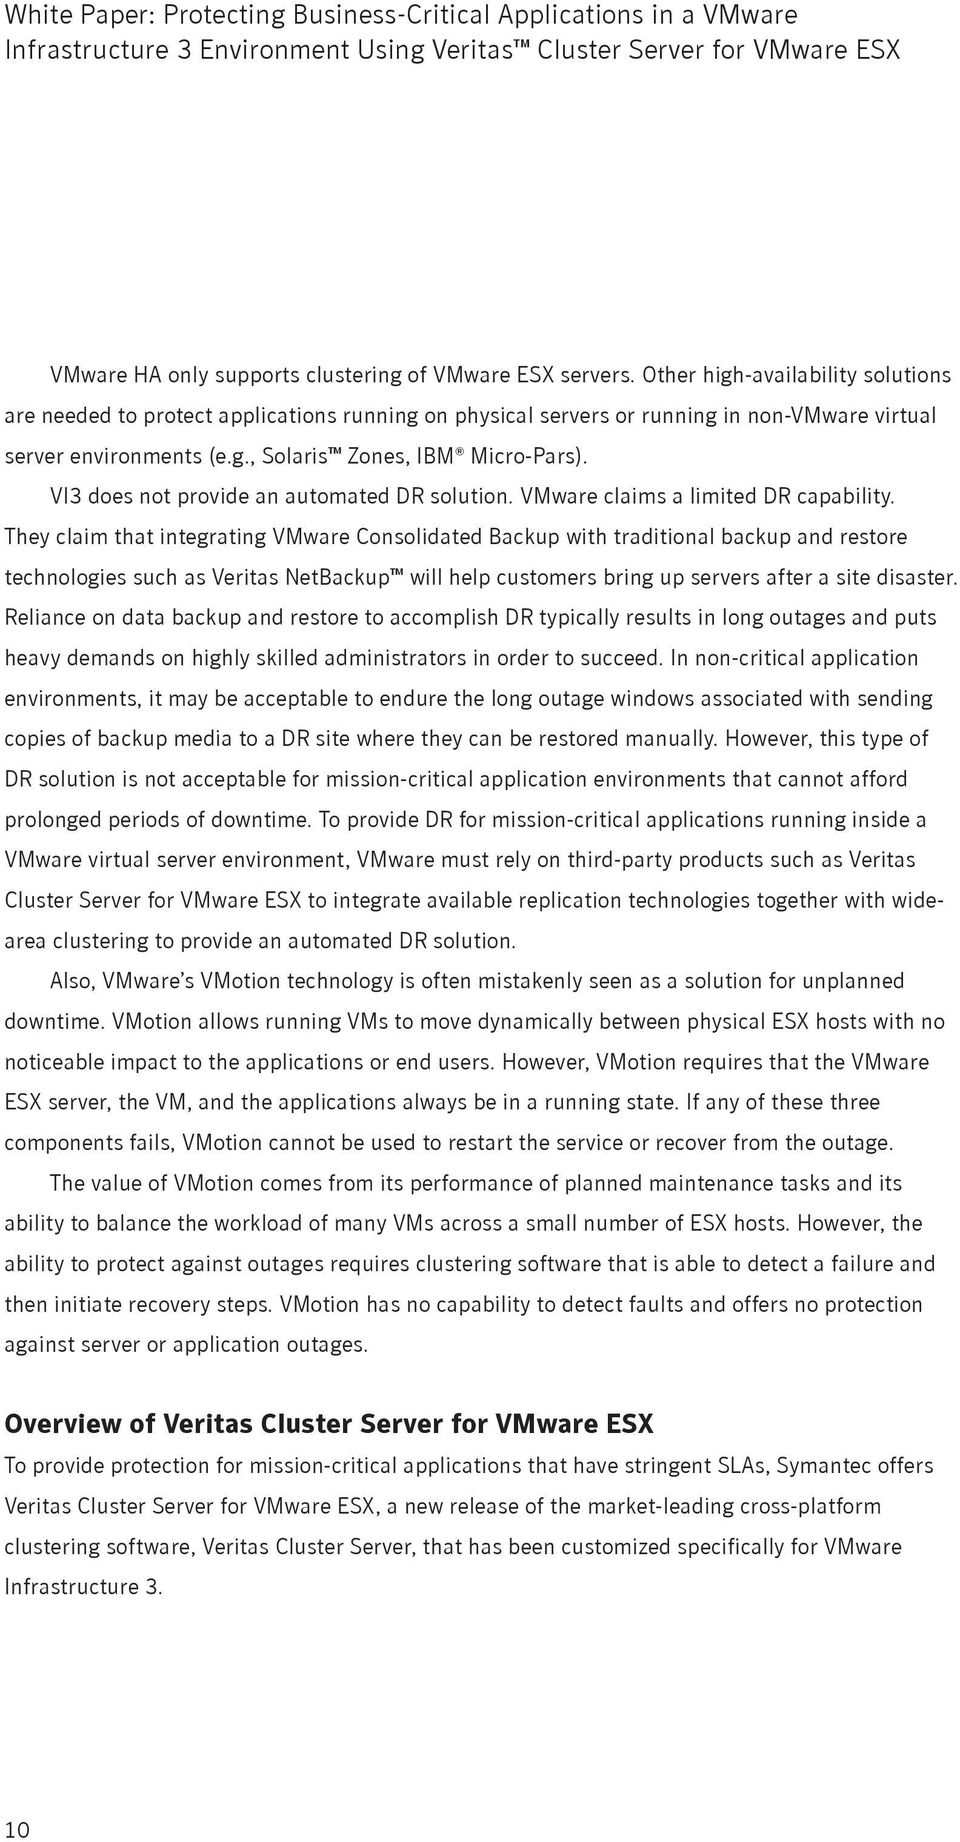 VI3 does not provide an automated DR solution. VMware claims a limited DR capability.